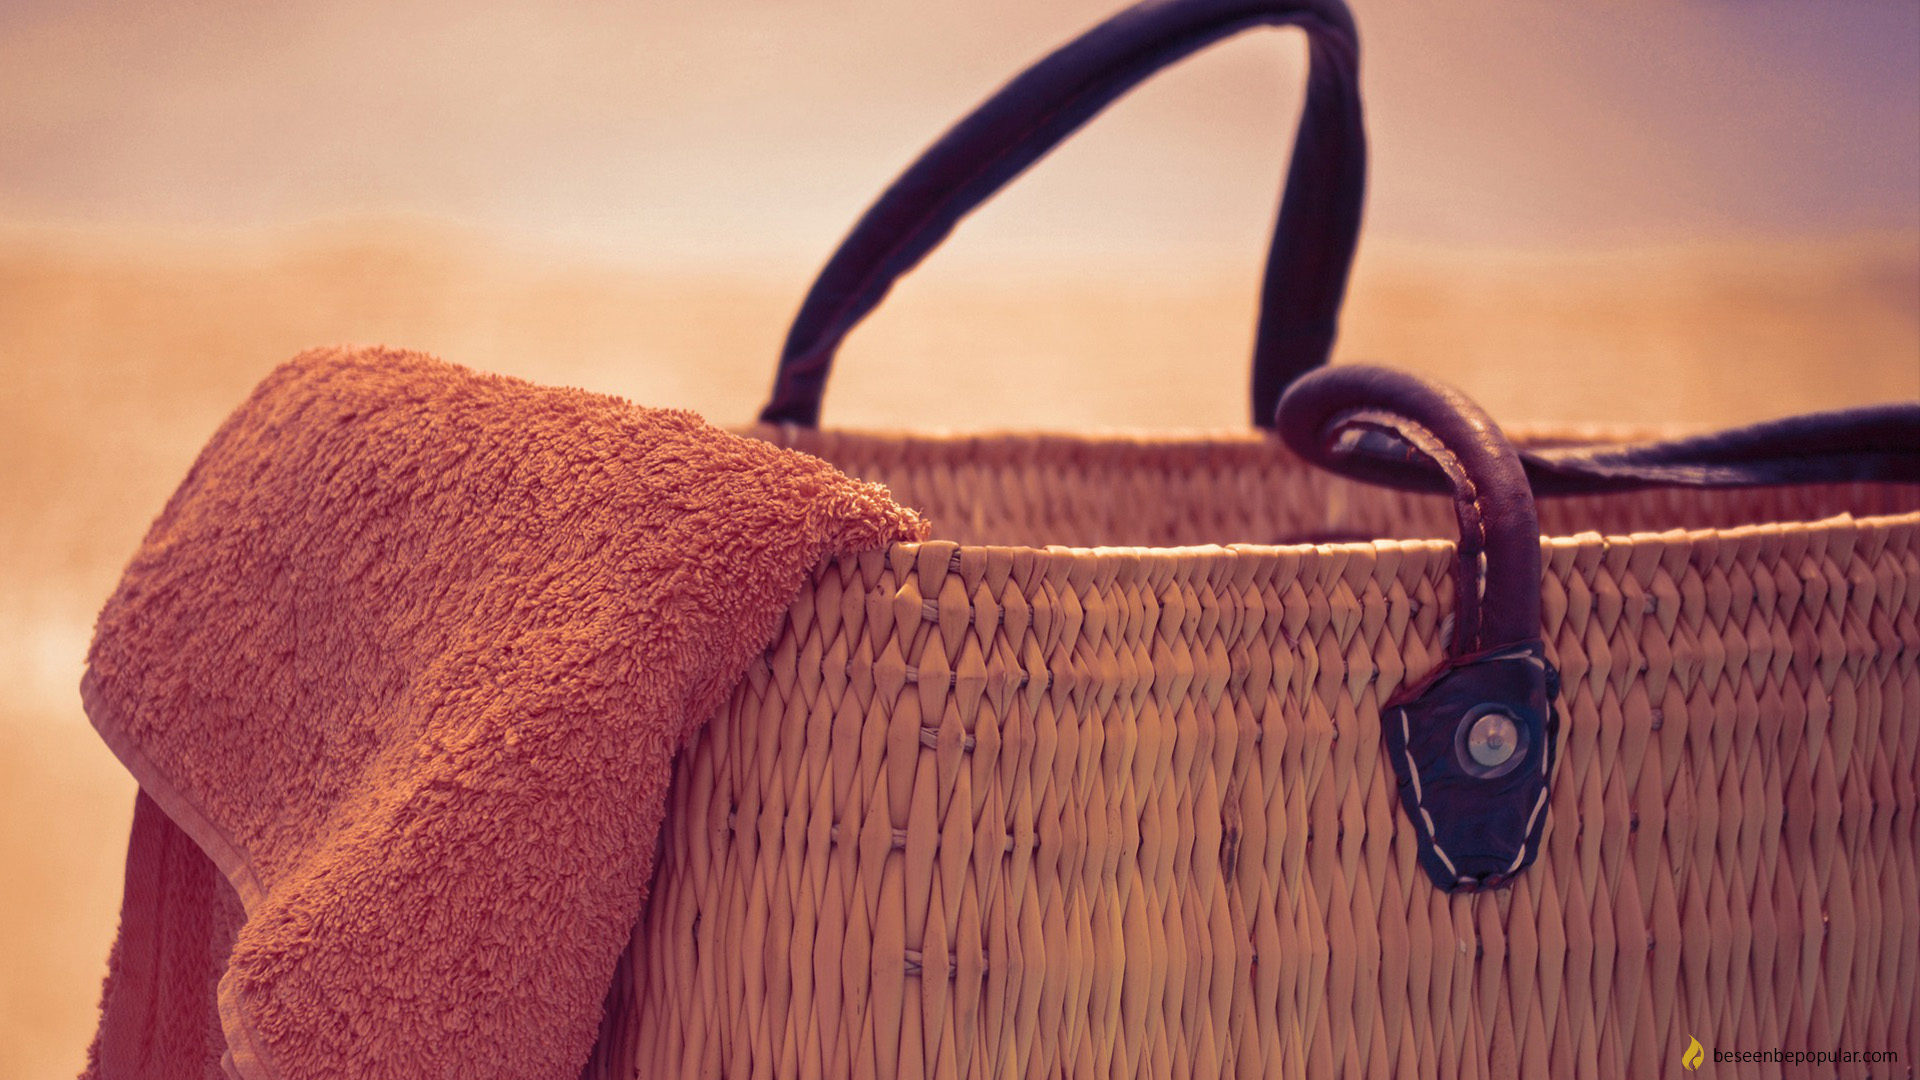 What to bring to the beach and how to protect your stuff?